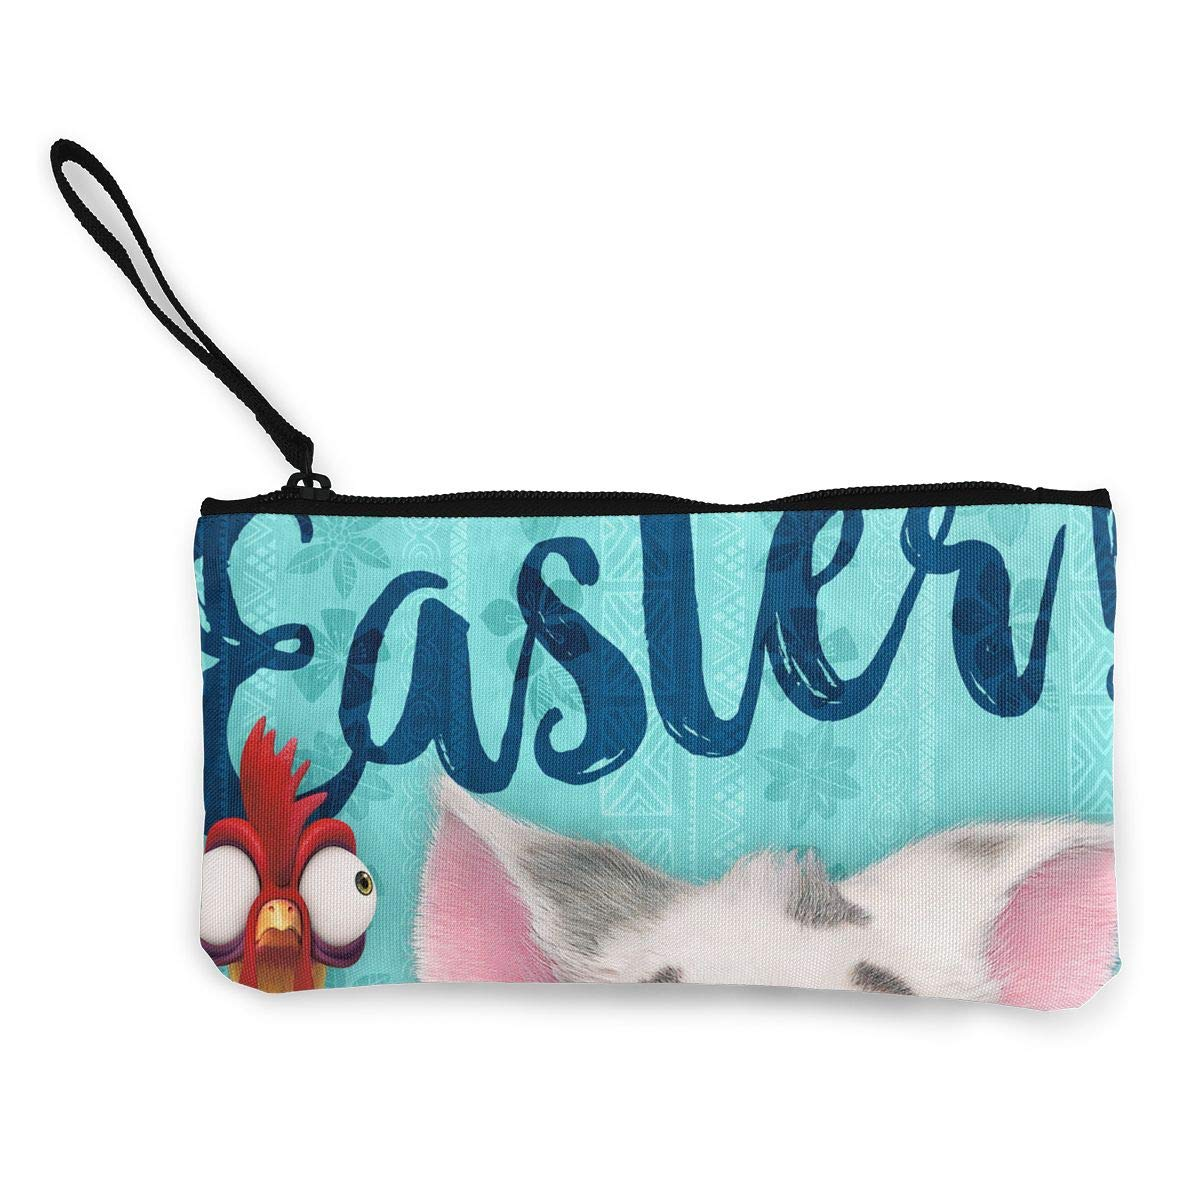 Make Up Bag Cellphone Bag With Handle DH14hjsdDEE Bunny Party Zipper Canvas Coin Purse Wallet